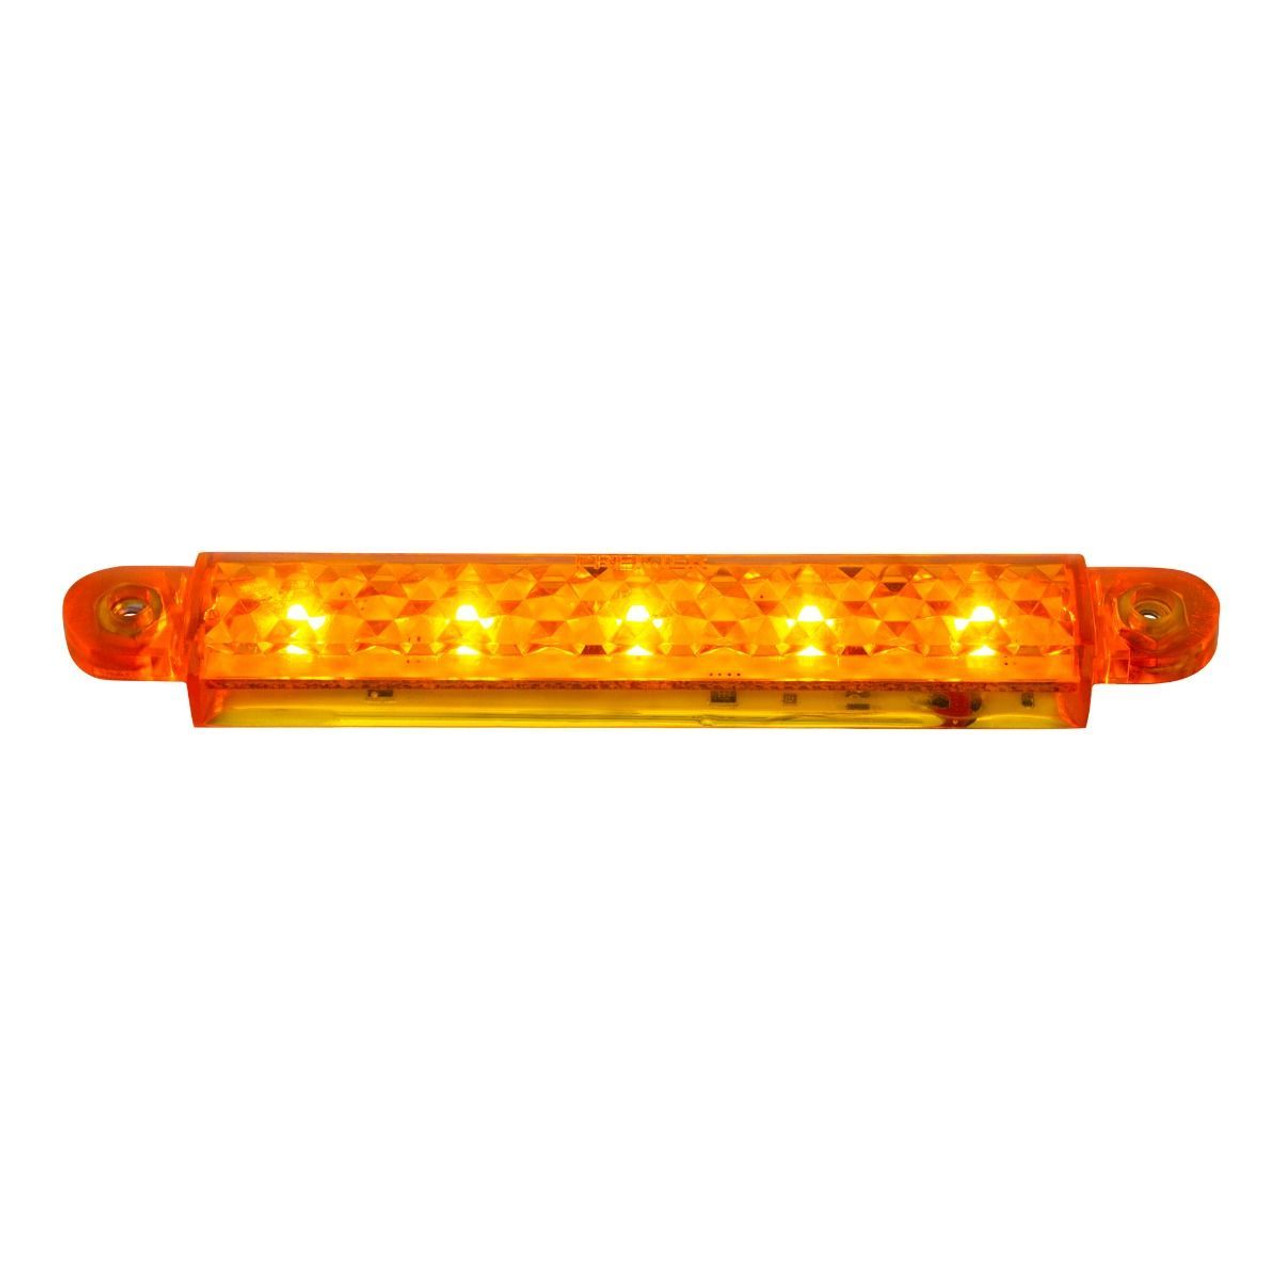 "5"" 5 Amber SMD LED Light Strip With 3-Wire Connection"